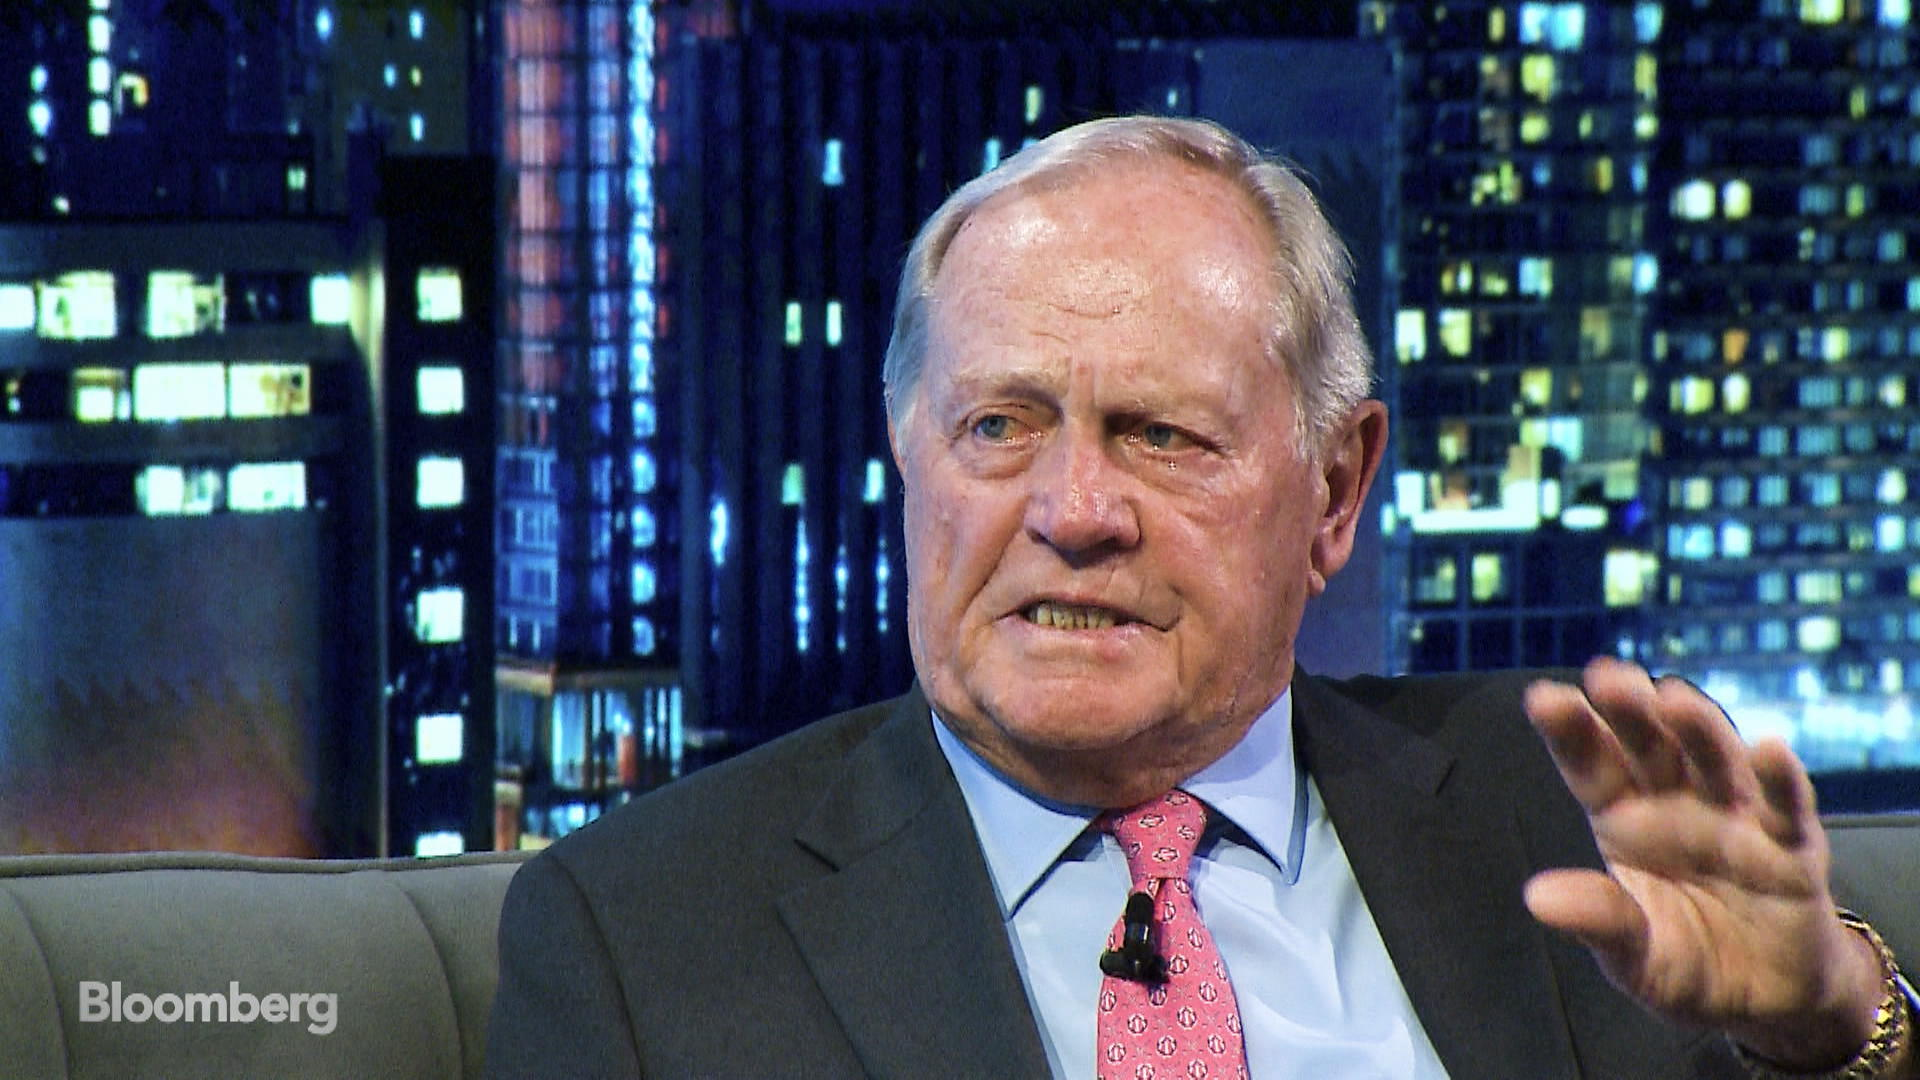 How Are Jack Nicklaus, Paul Newman and Steve McQueen Linked?